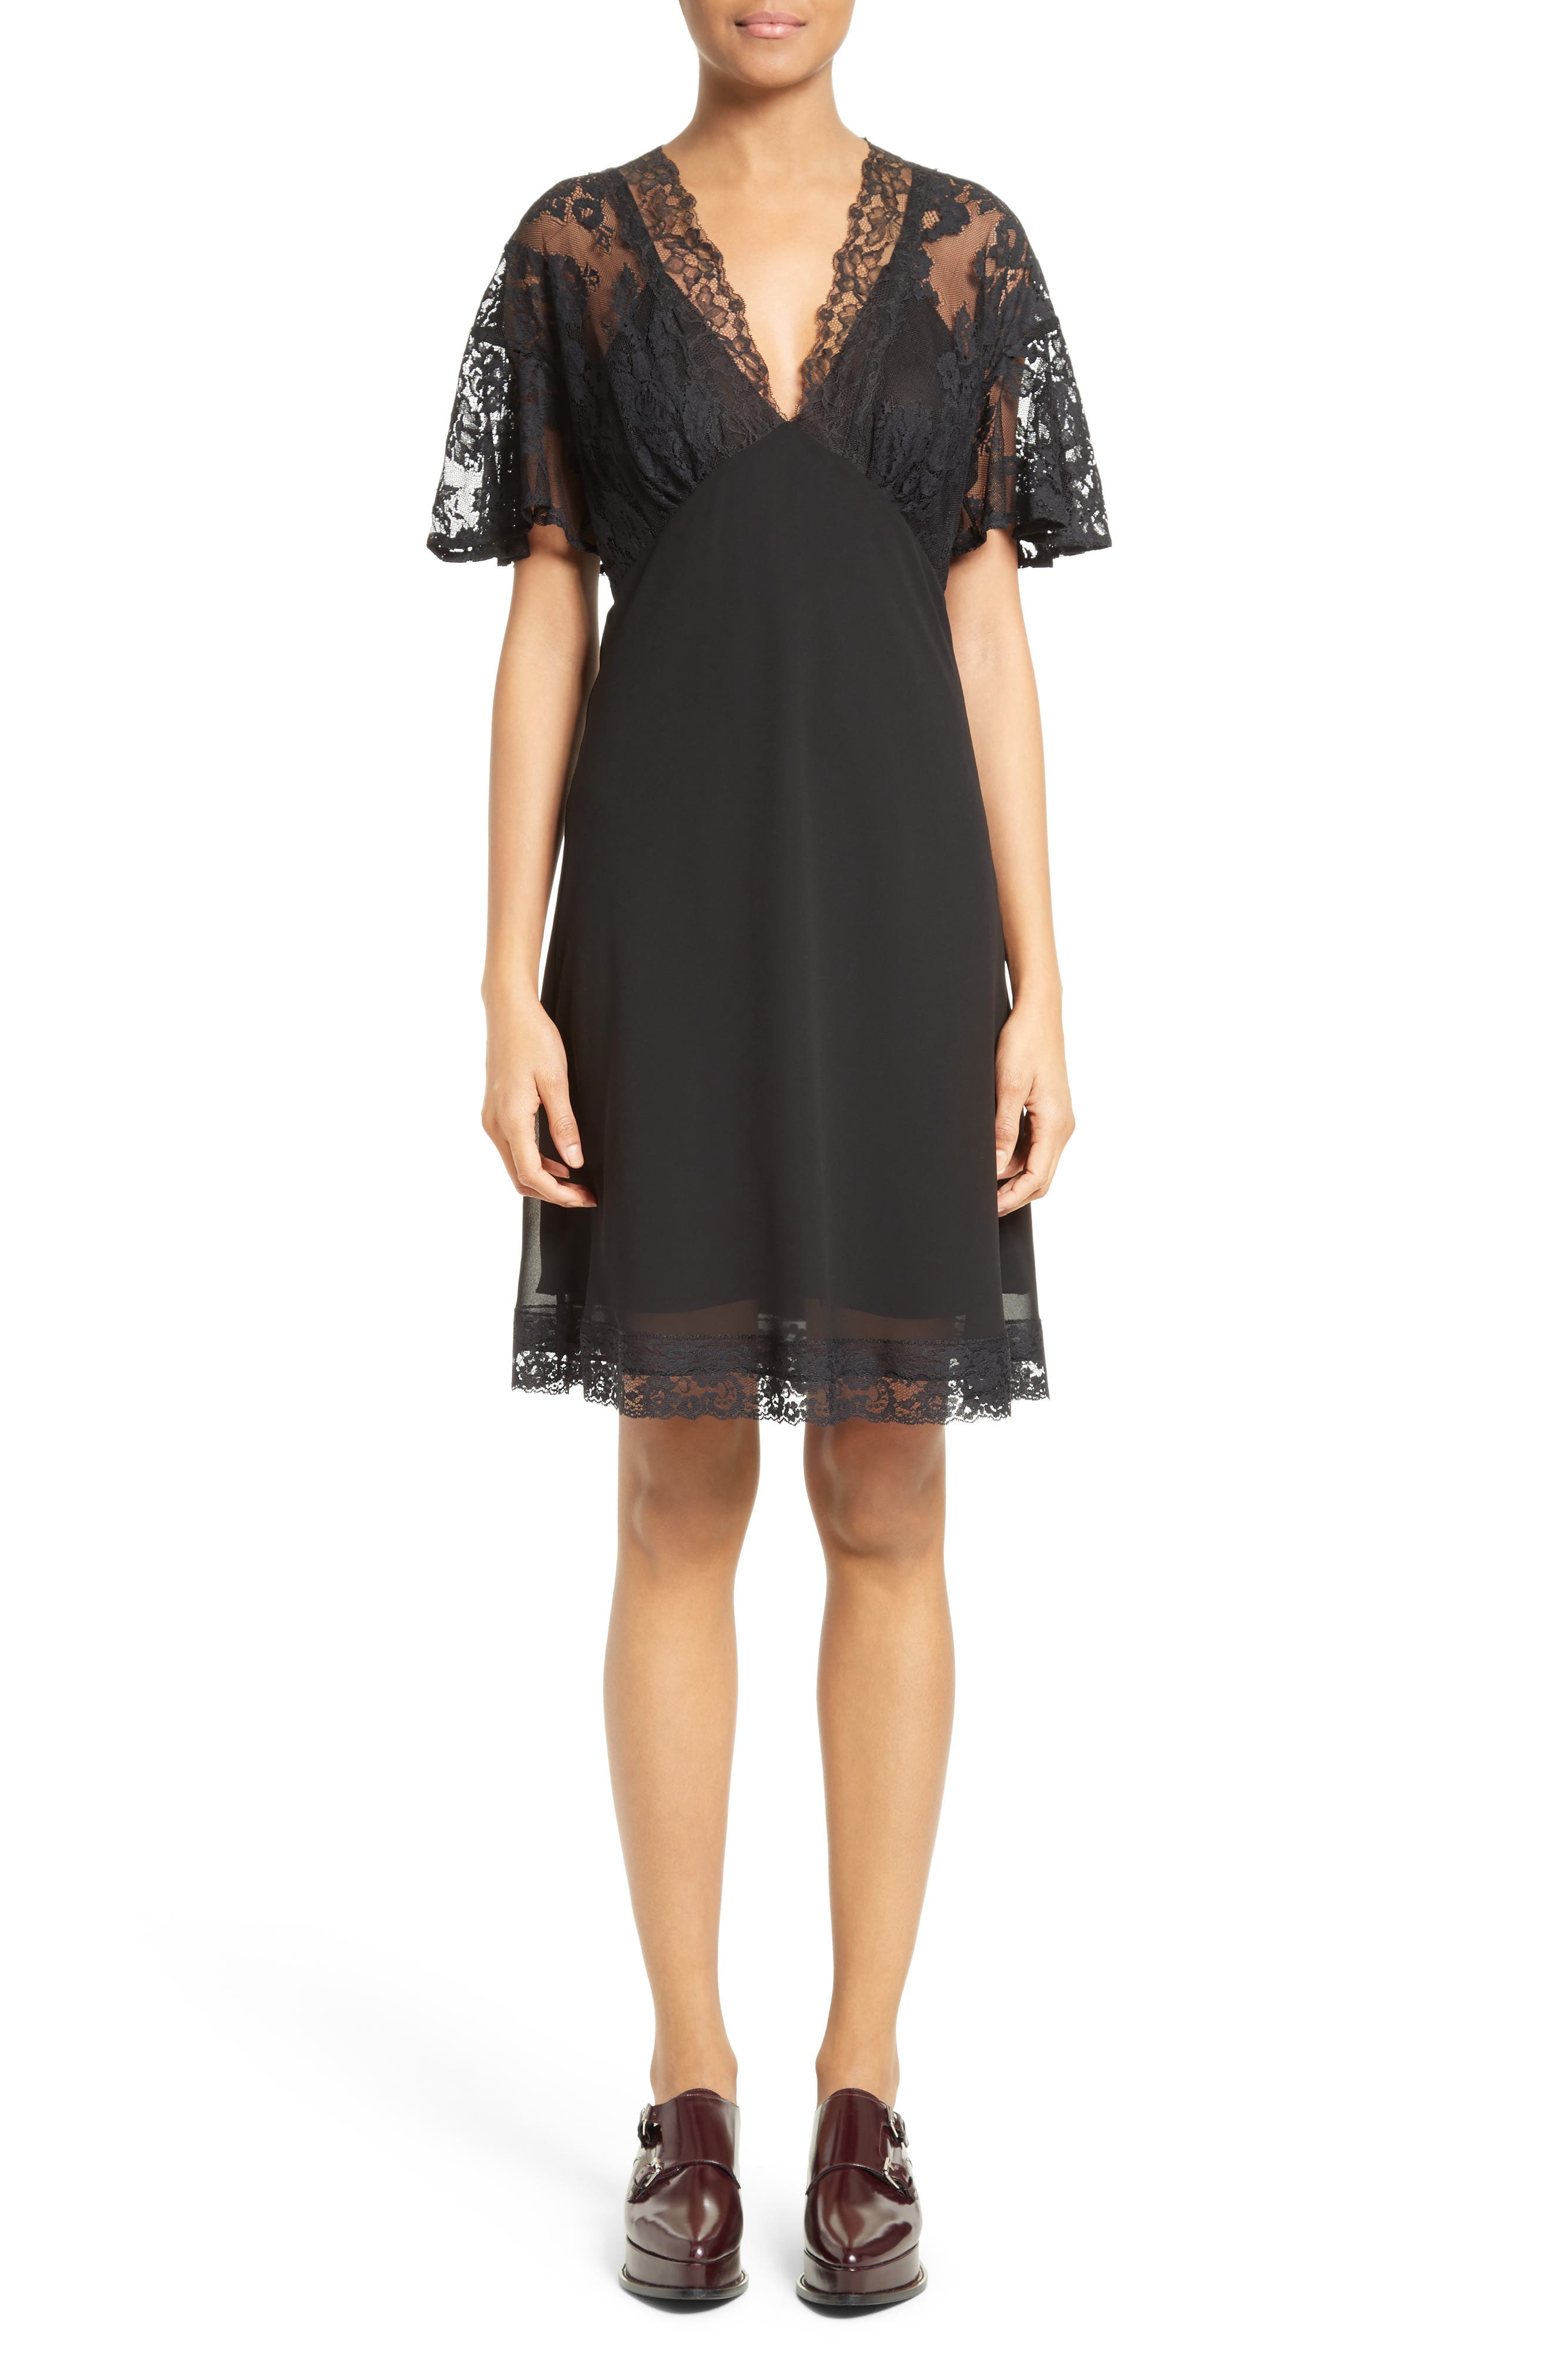 Alternate Image 1 Selected - McQ Alexander McQueen Volant Lace Dress